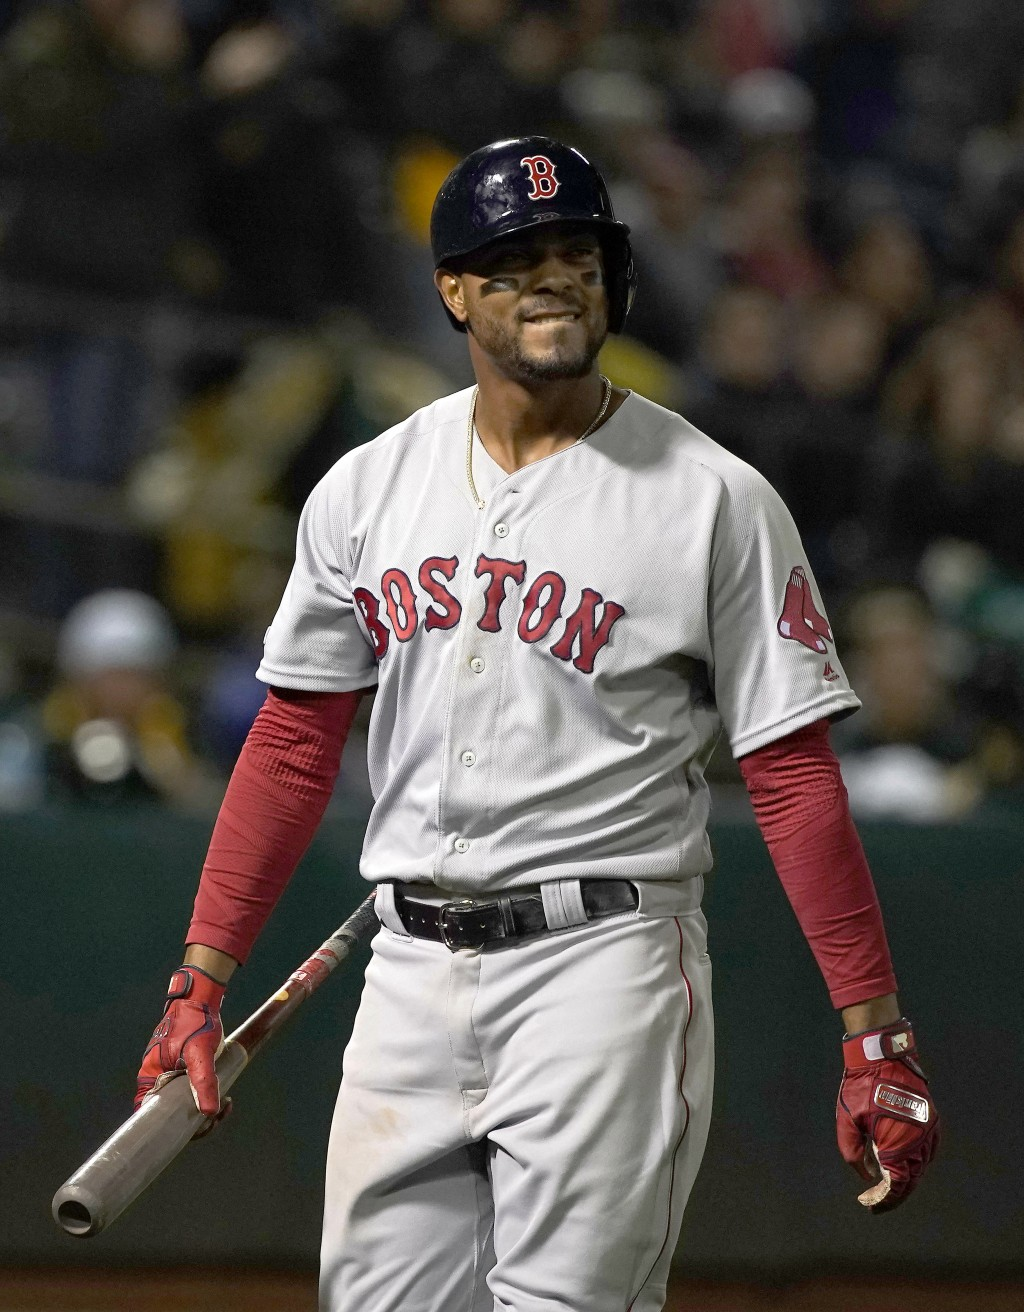 Boston Red Sox's Xander Bogaerts walks back to the dugout after striking out against the Oakland Athletics during the sixth inning of a baseball game